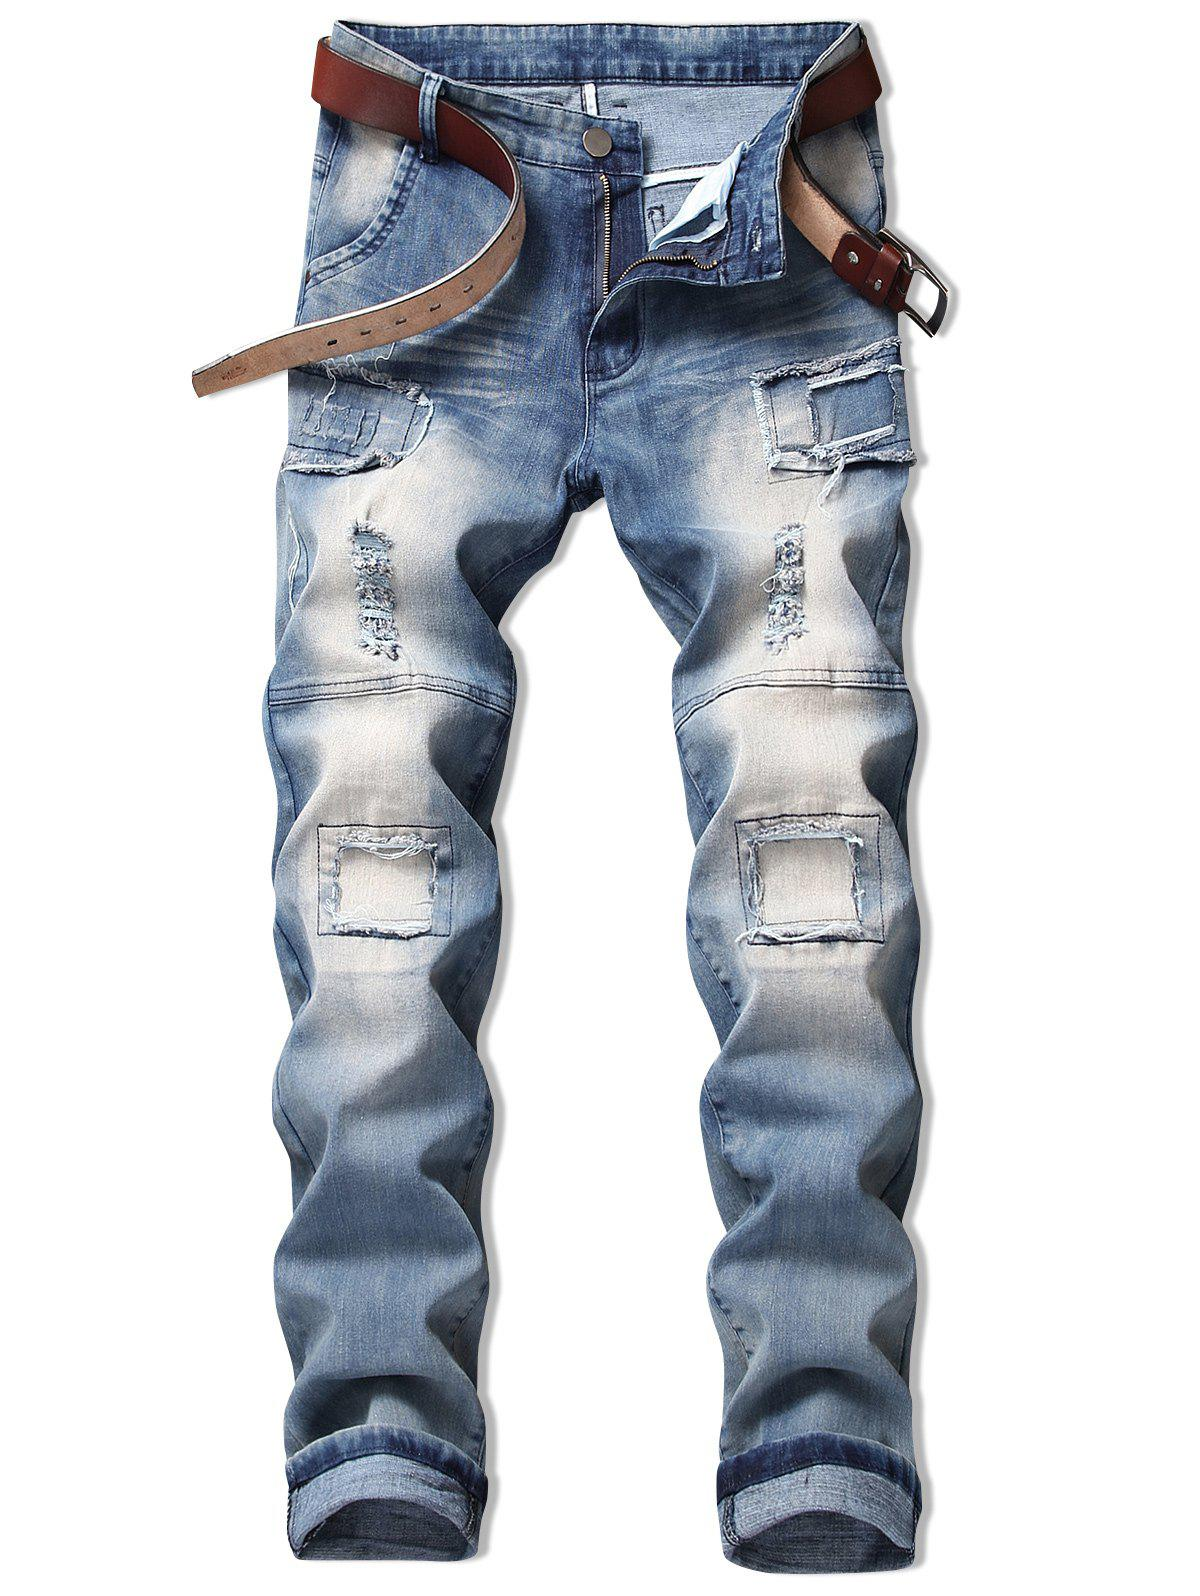 Discount Vintage Hole Patchwork Ripped Faded Jeans